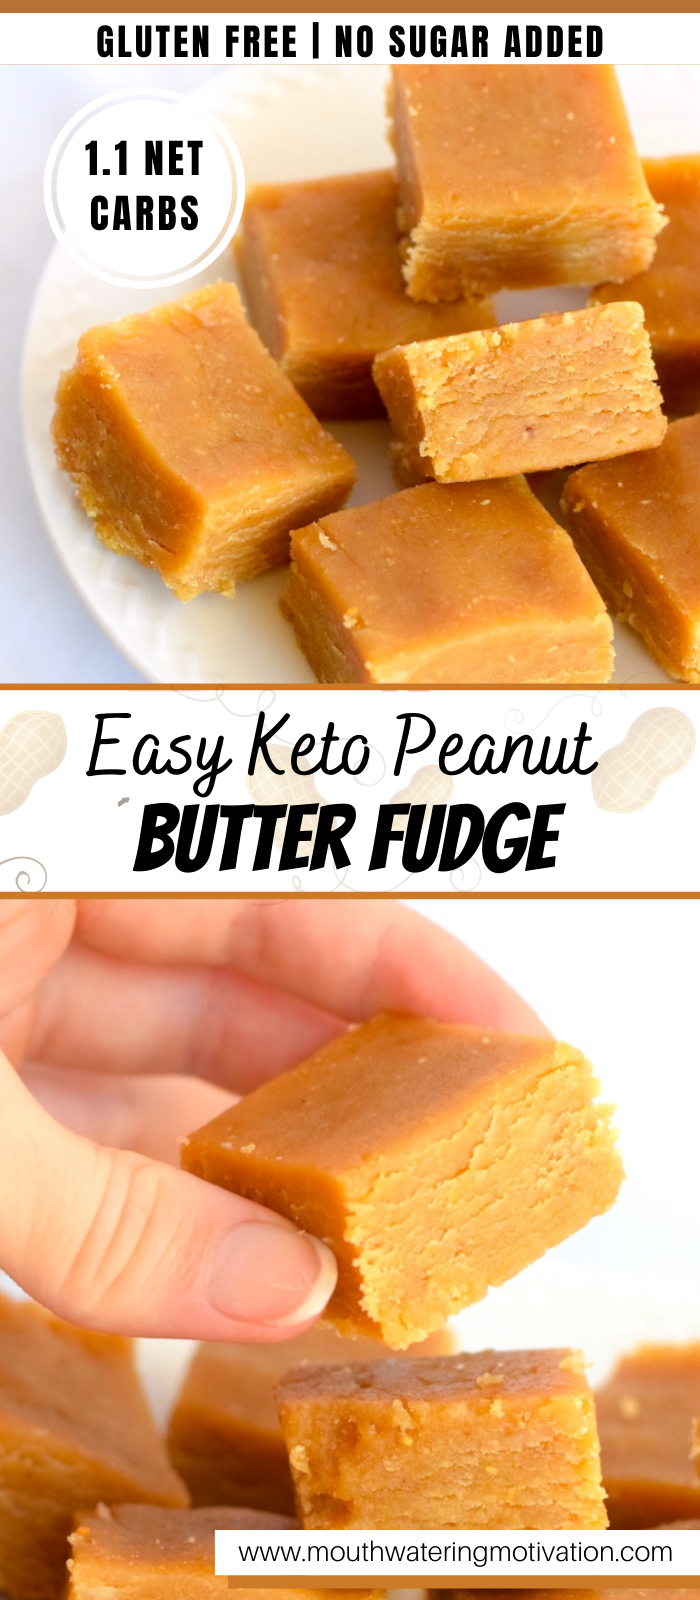 Easy keto peanut butter fudge